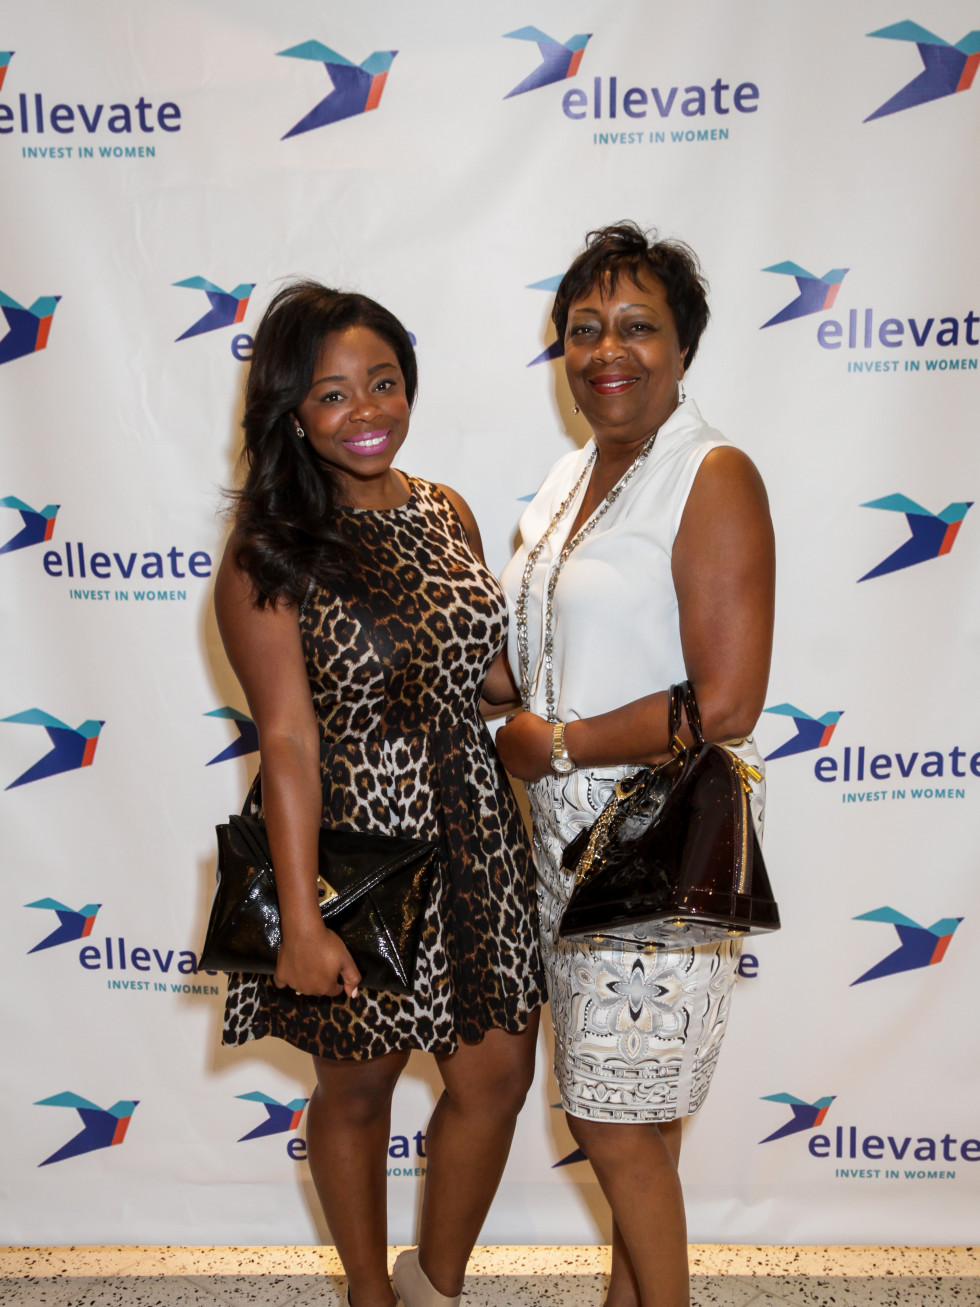 Houston, Ellevate event at Tootsies, August 2015, Kelly Cowthran, Sandra Cowthran